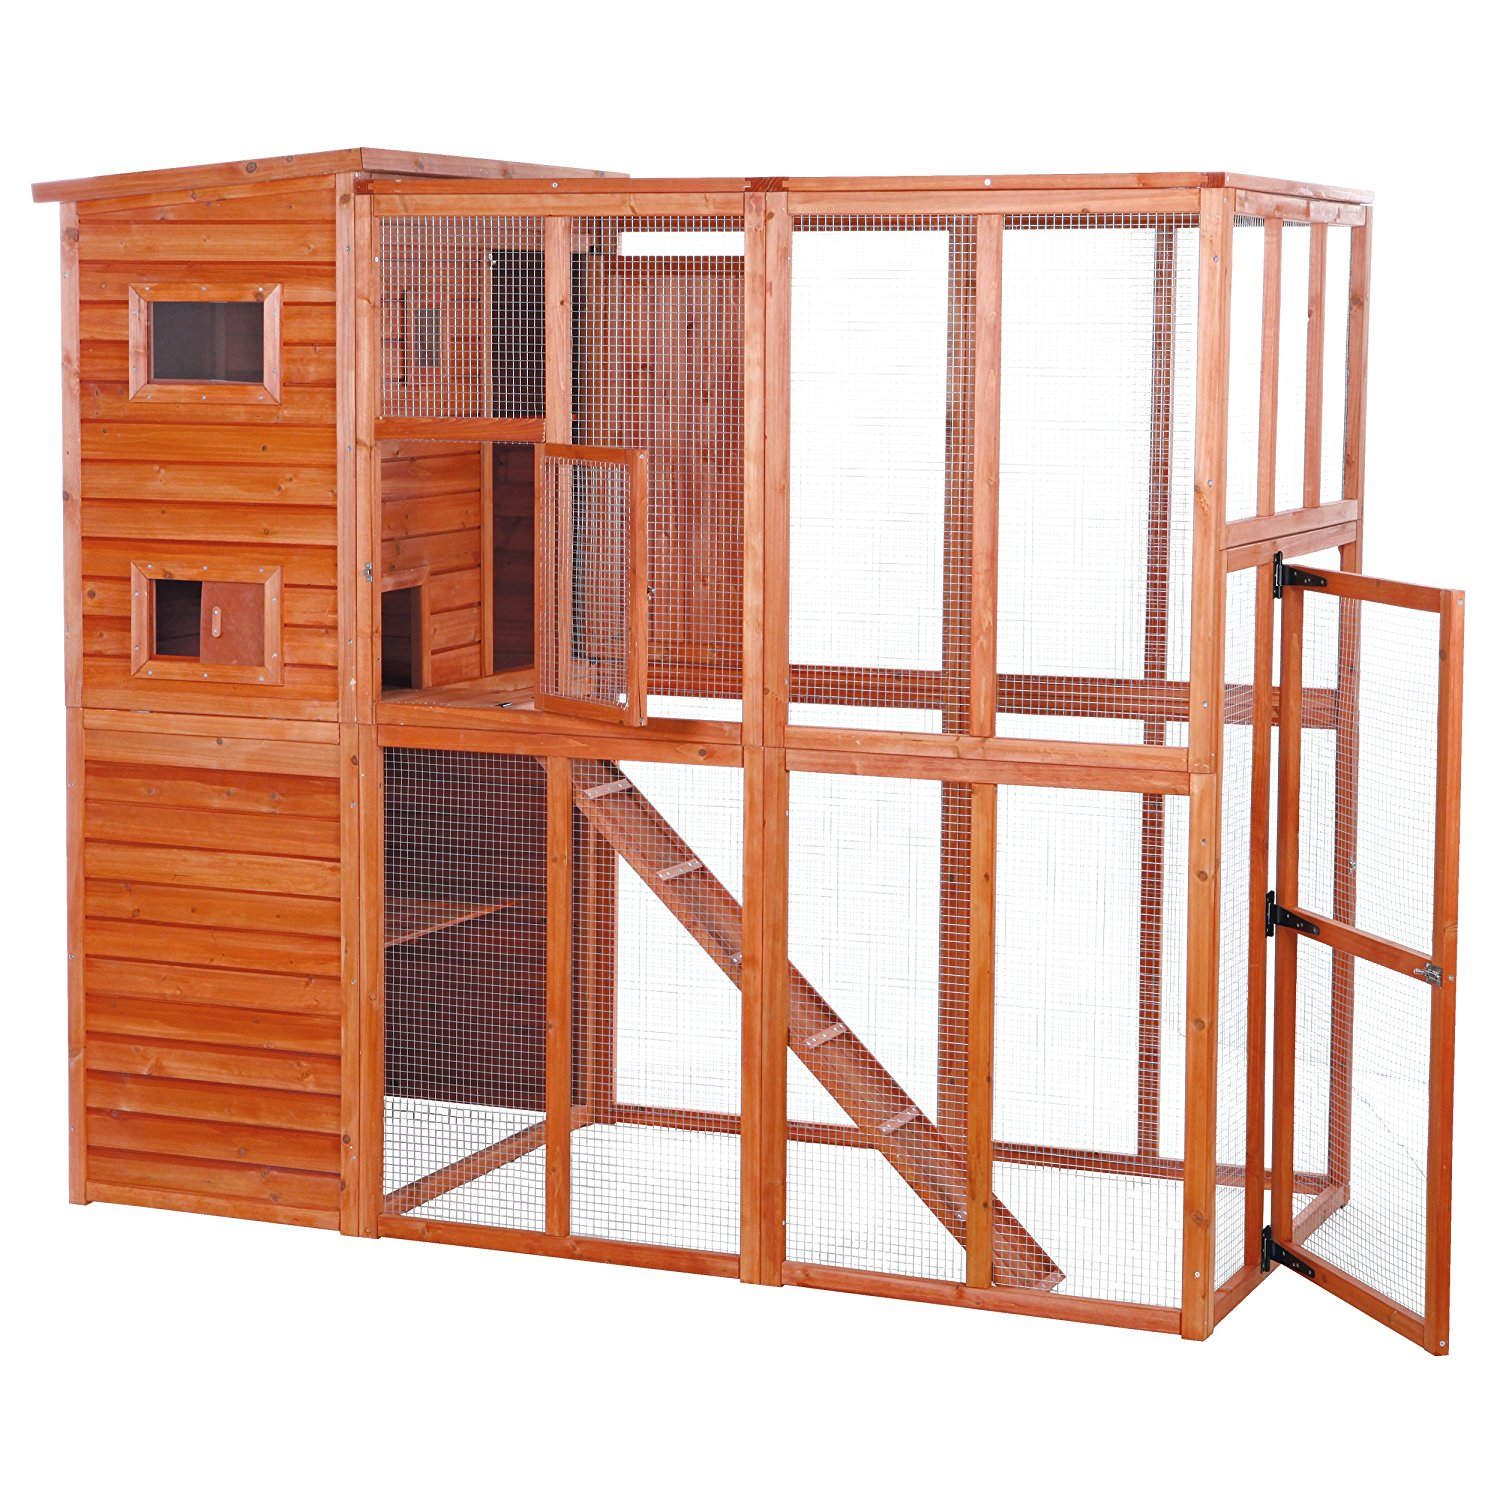 Purchase the best quality outdoor catio for your apartment balcony to allow your cats a glimpse of the outside world!